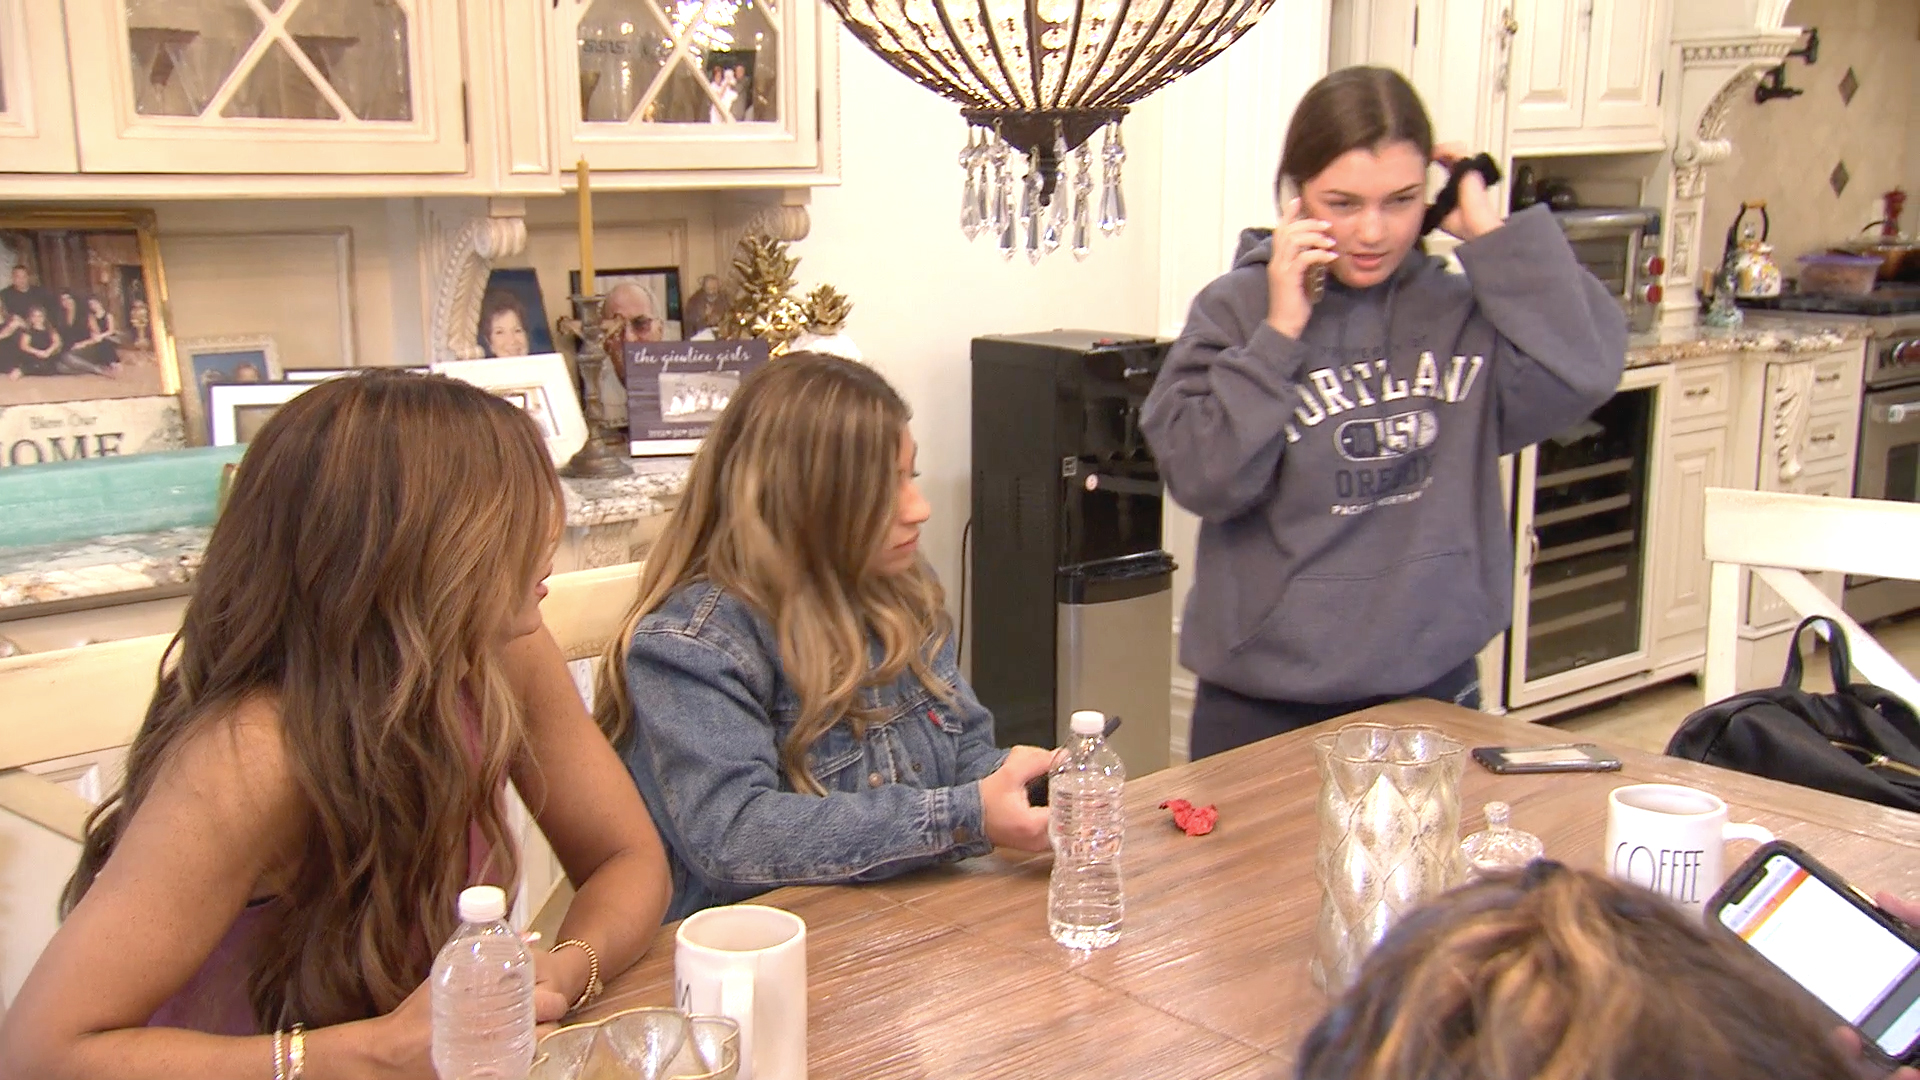 Joe Giudice Calls His Daughters From a New Facility